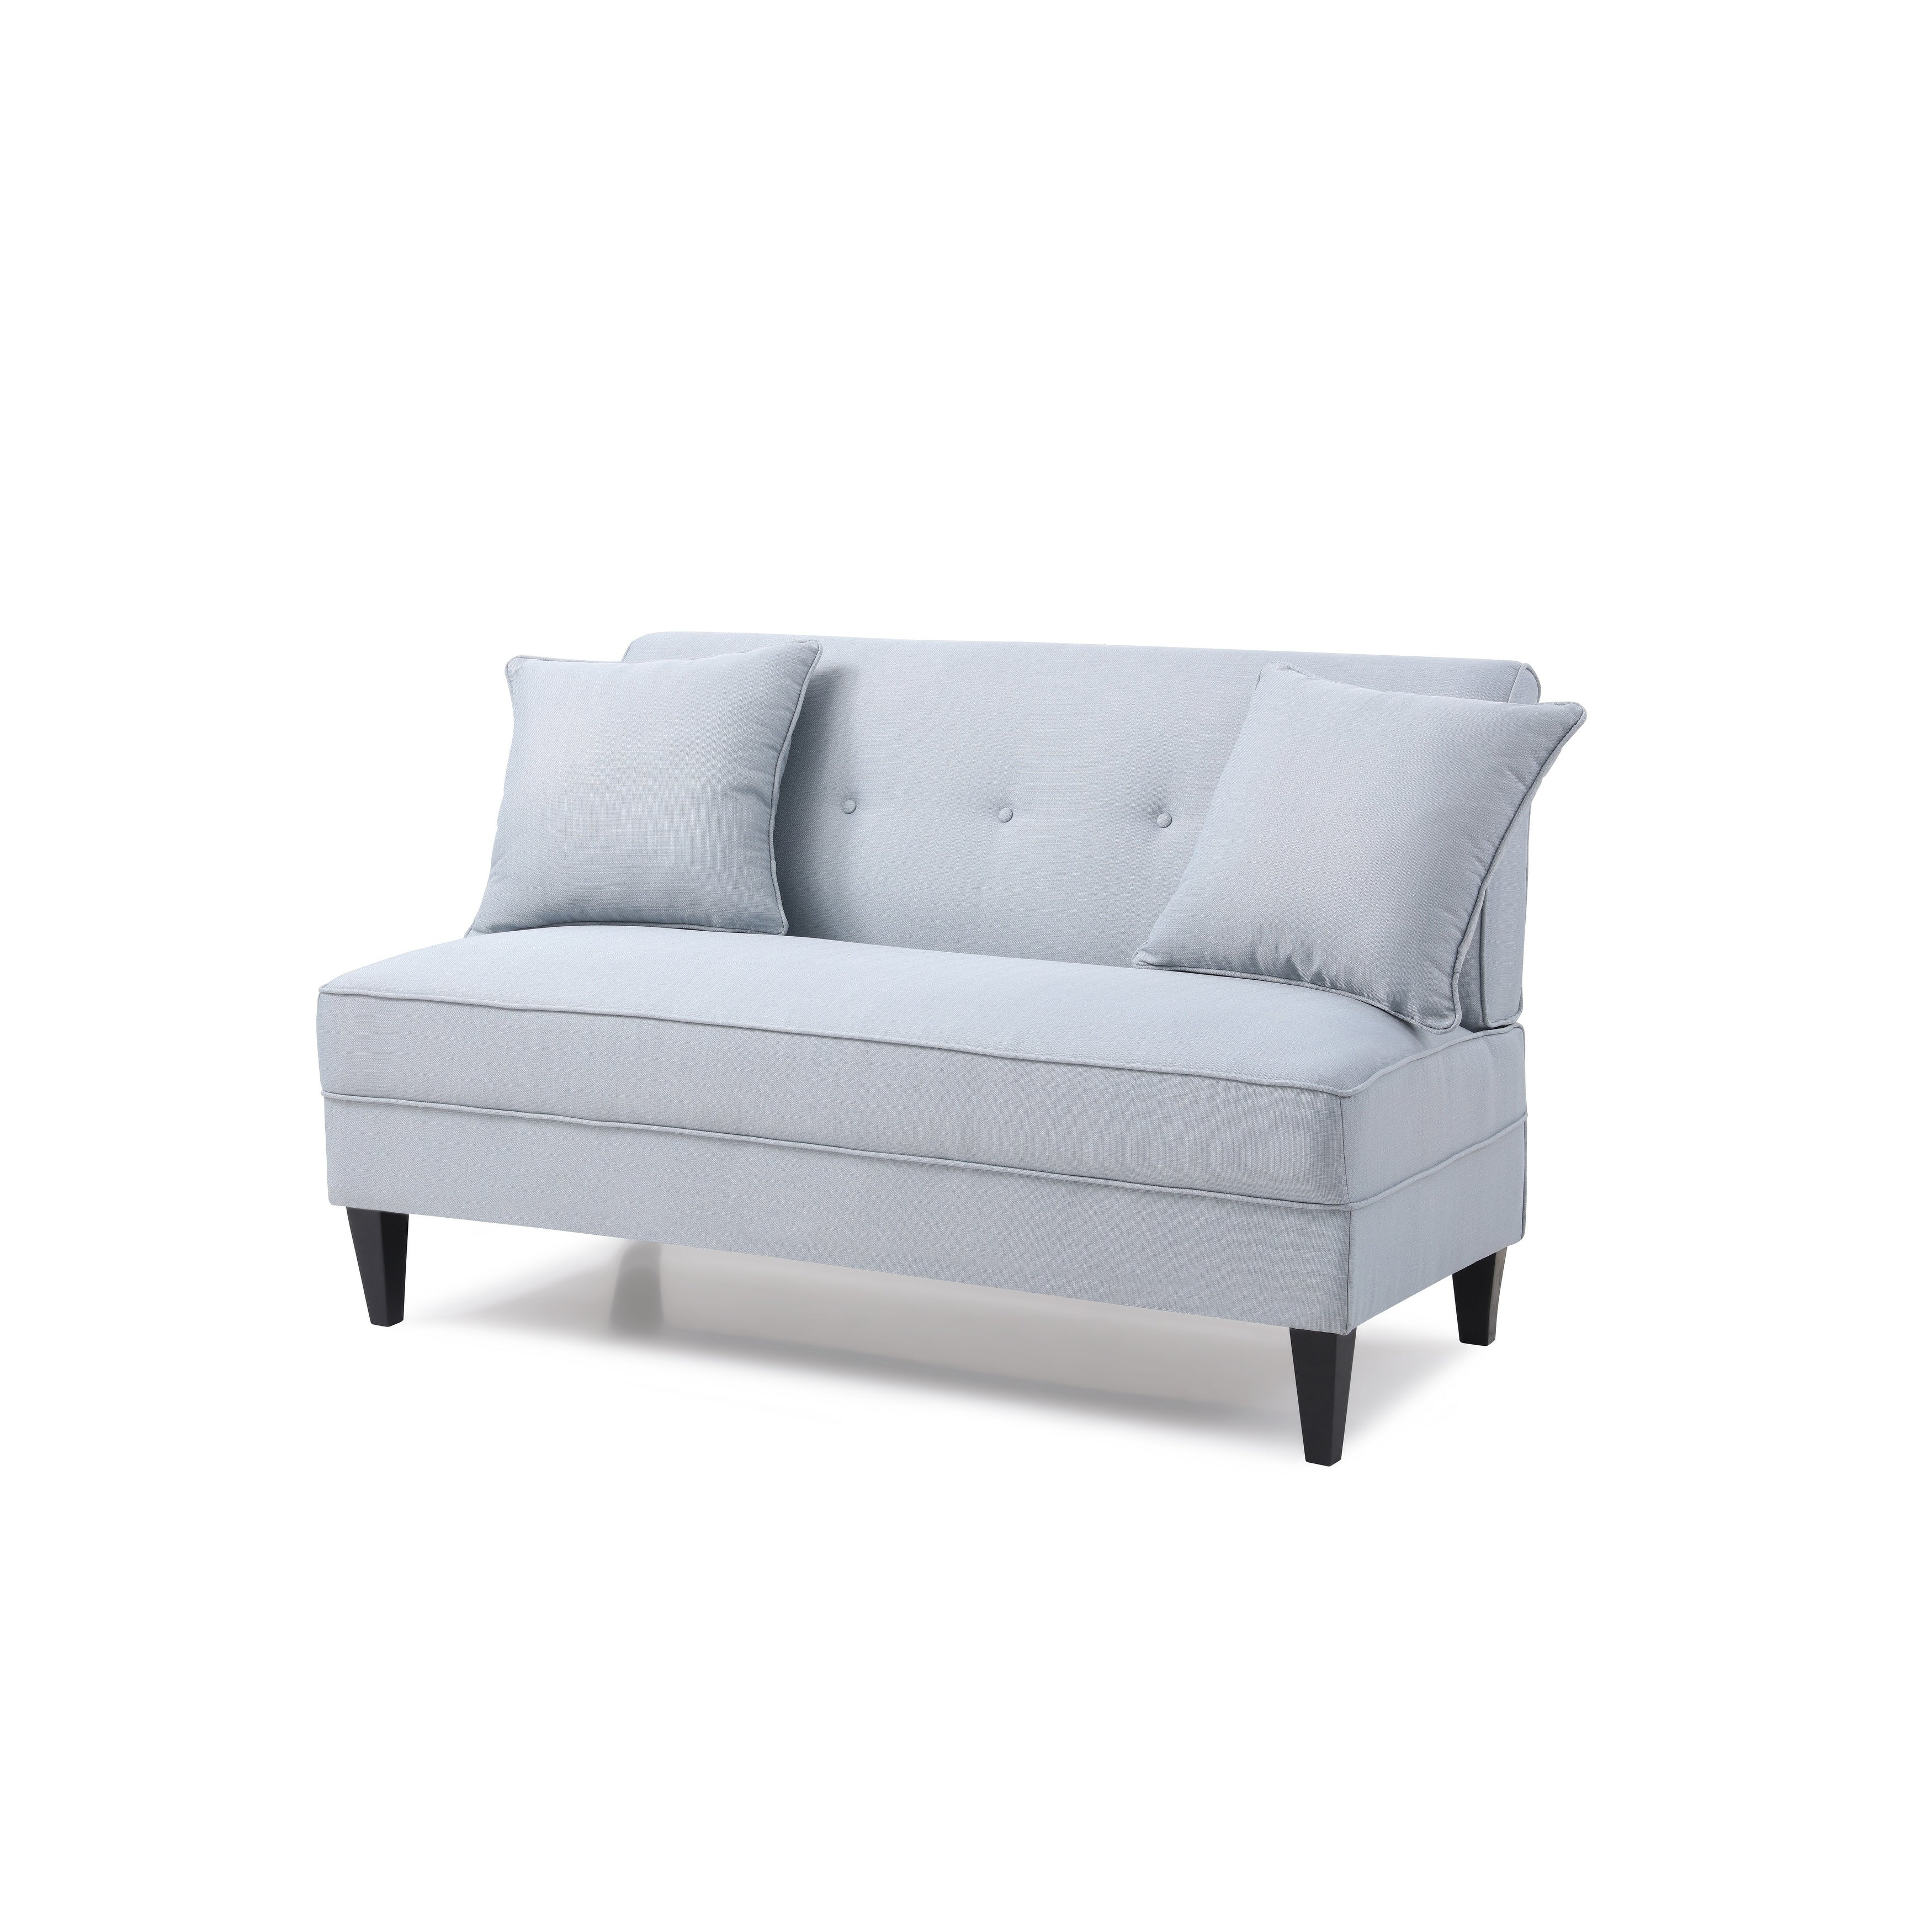 and pin pictured the loveseat wedge champagne armless with bumper sectional